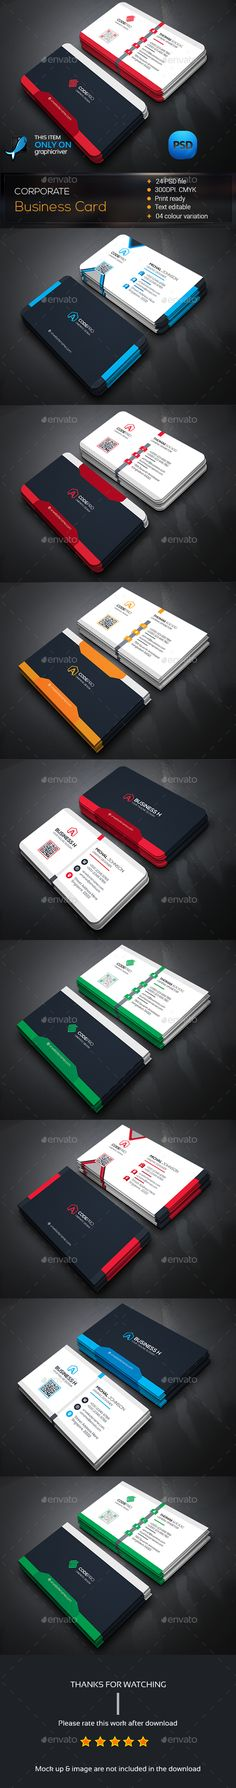 Corporate Business Card Template Bundle PSD. Download here: http://graphicriver.net/item/corporate-business-card-bundle/14558733?ref=ksioks